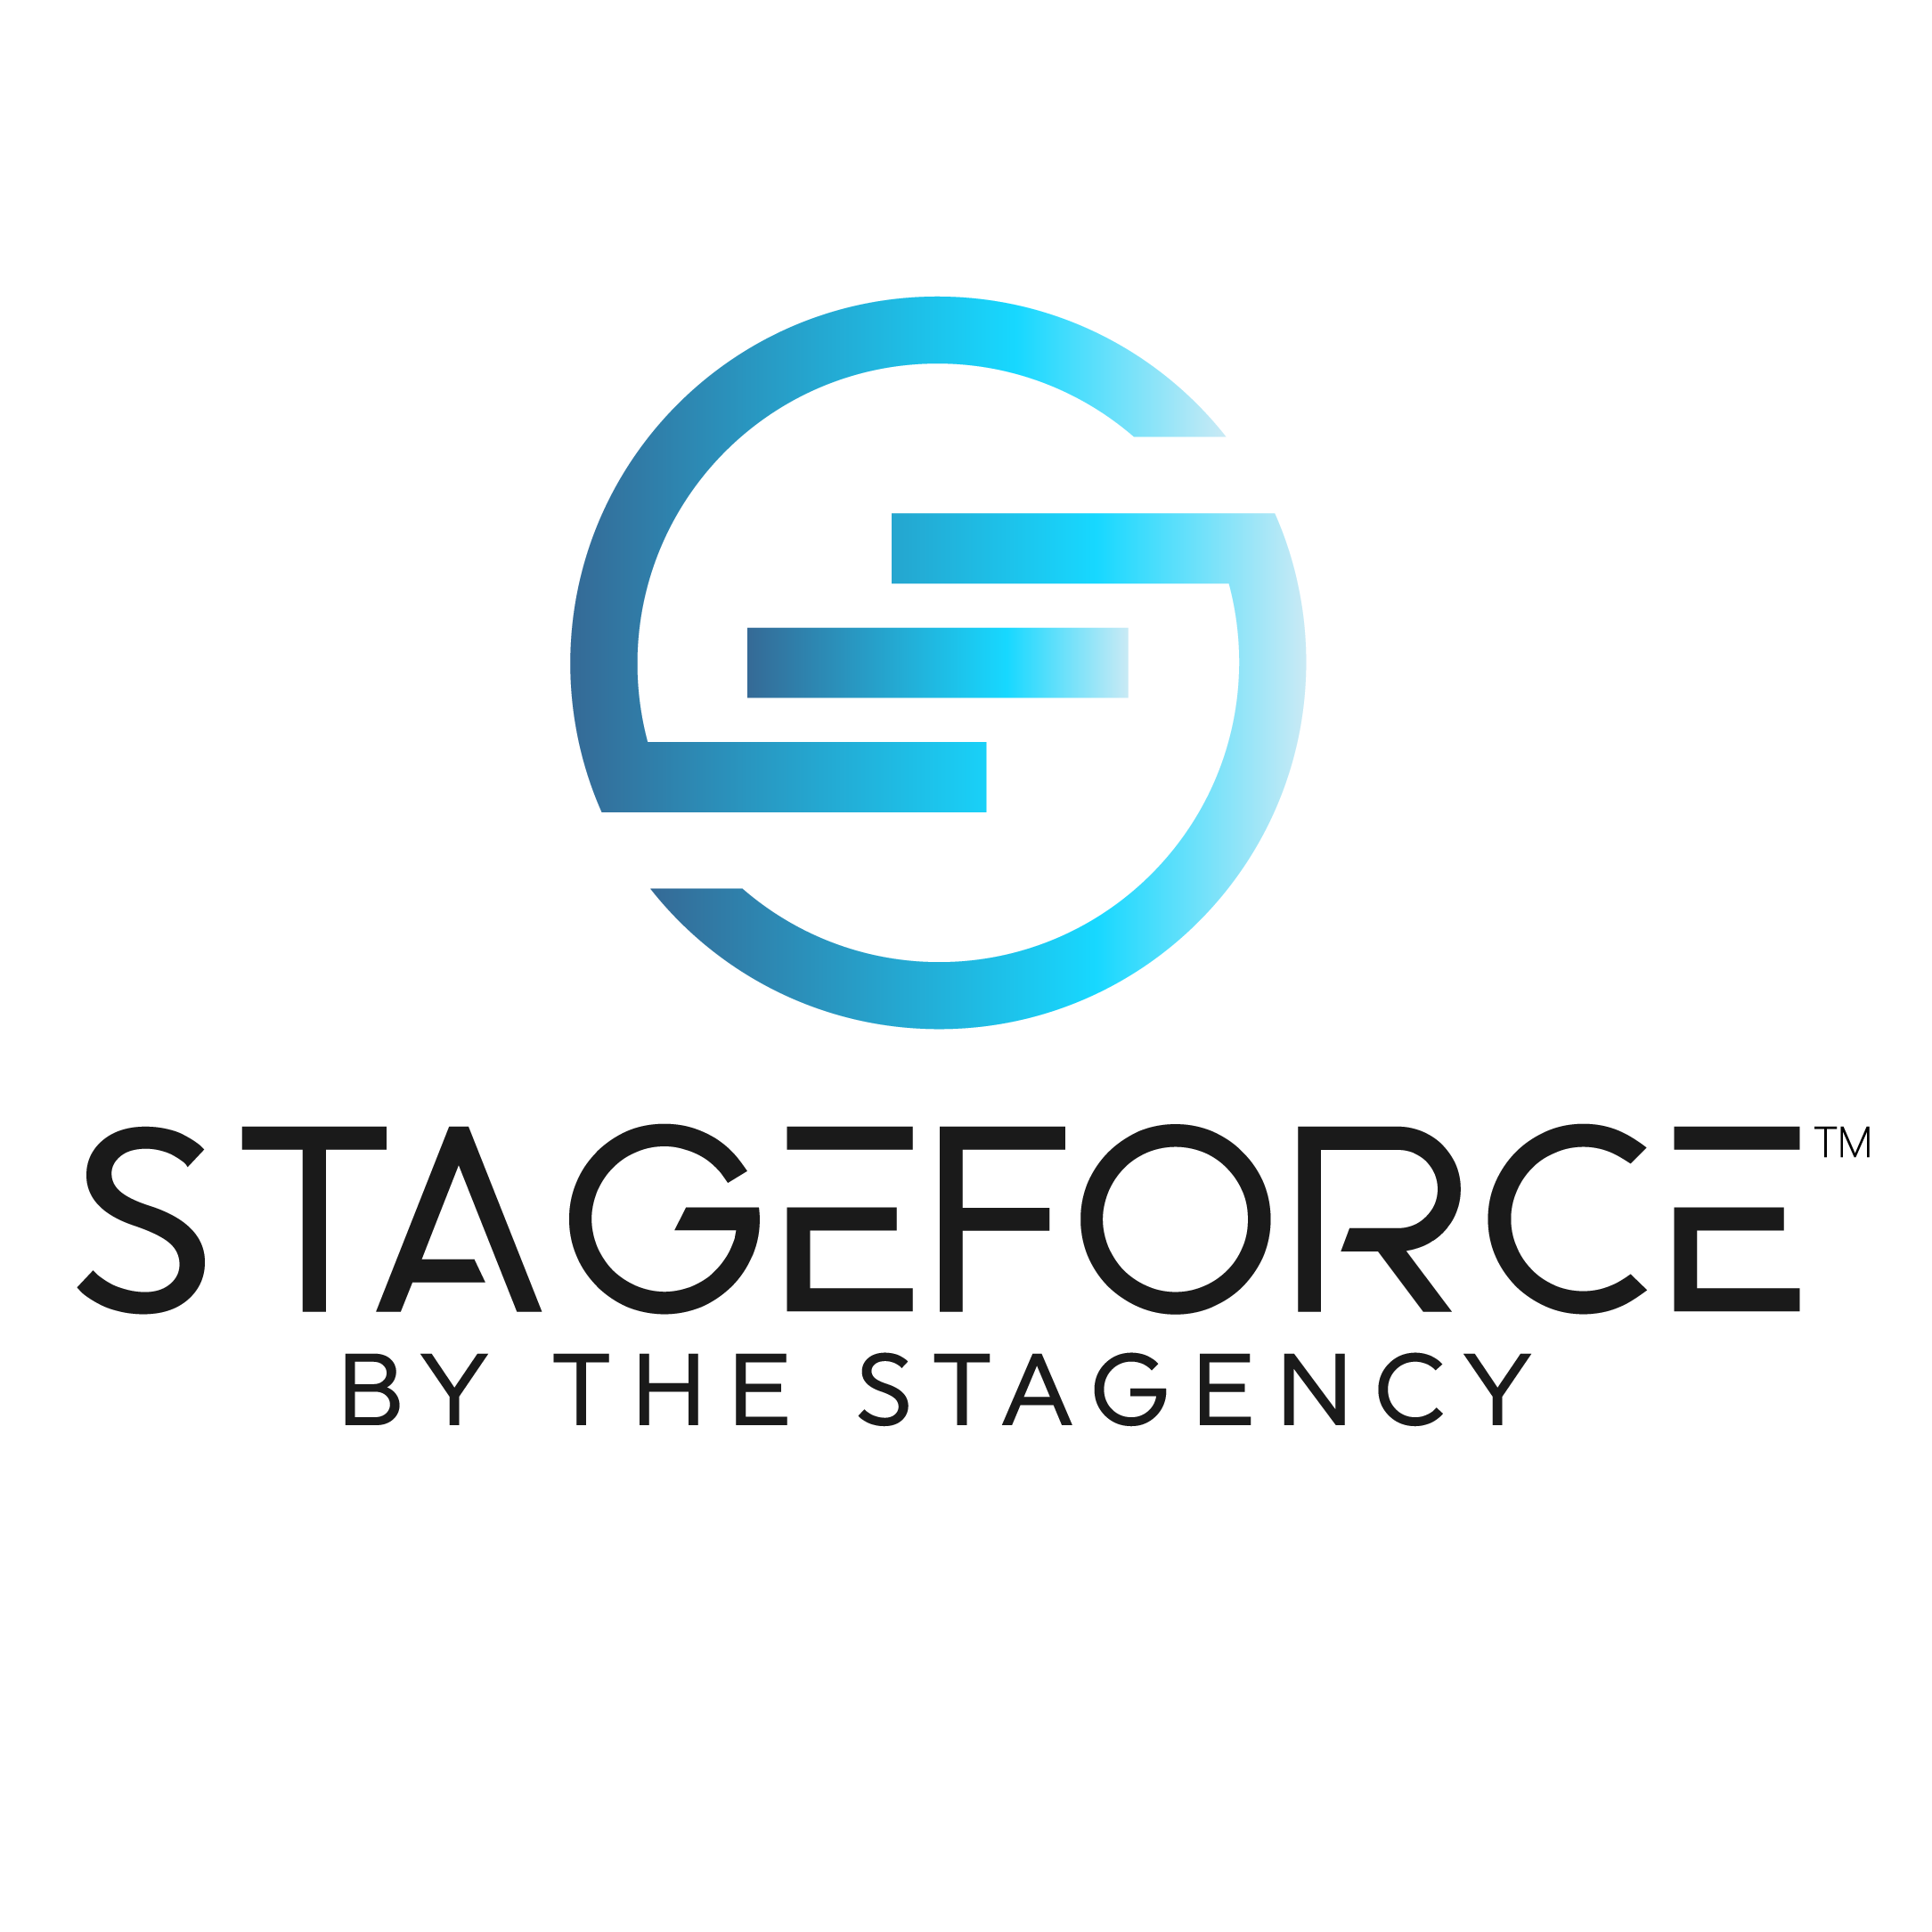 stageforce logo bear branded